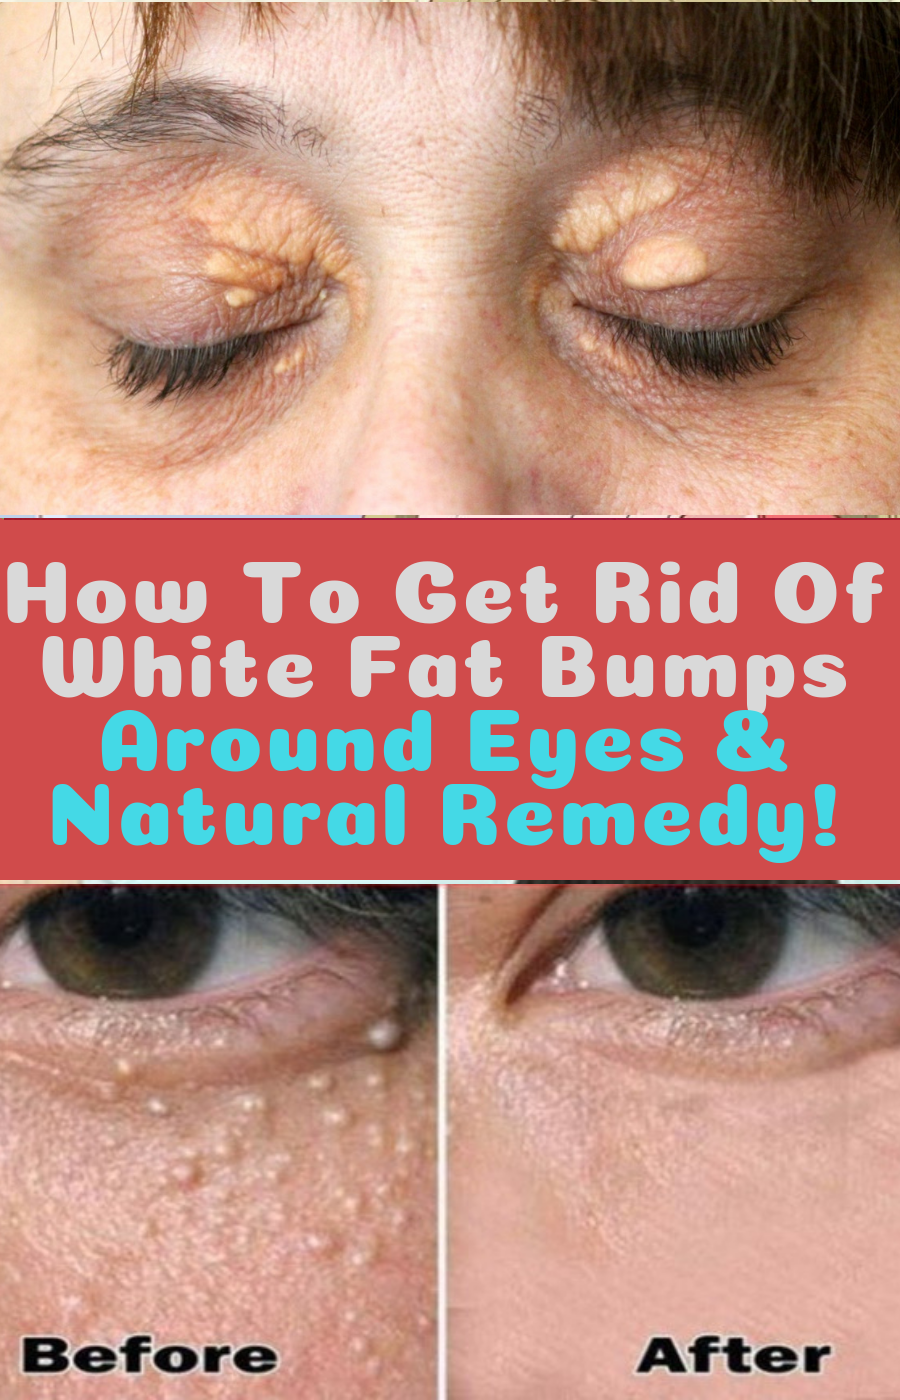 How to remove white fatty spots on face